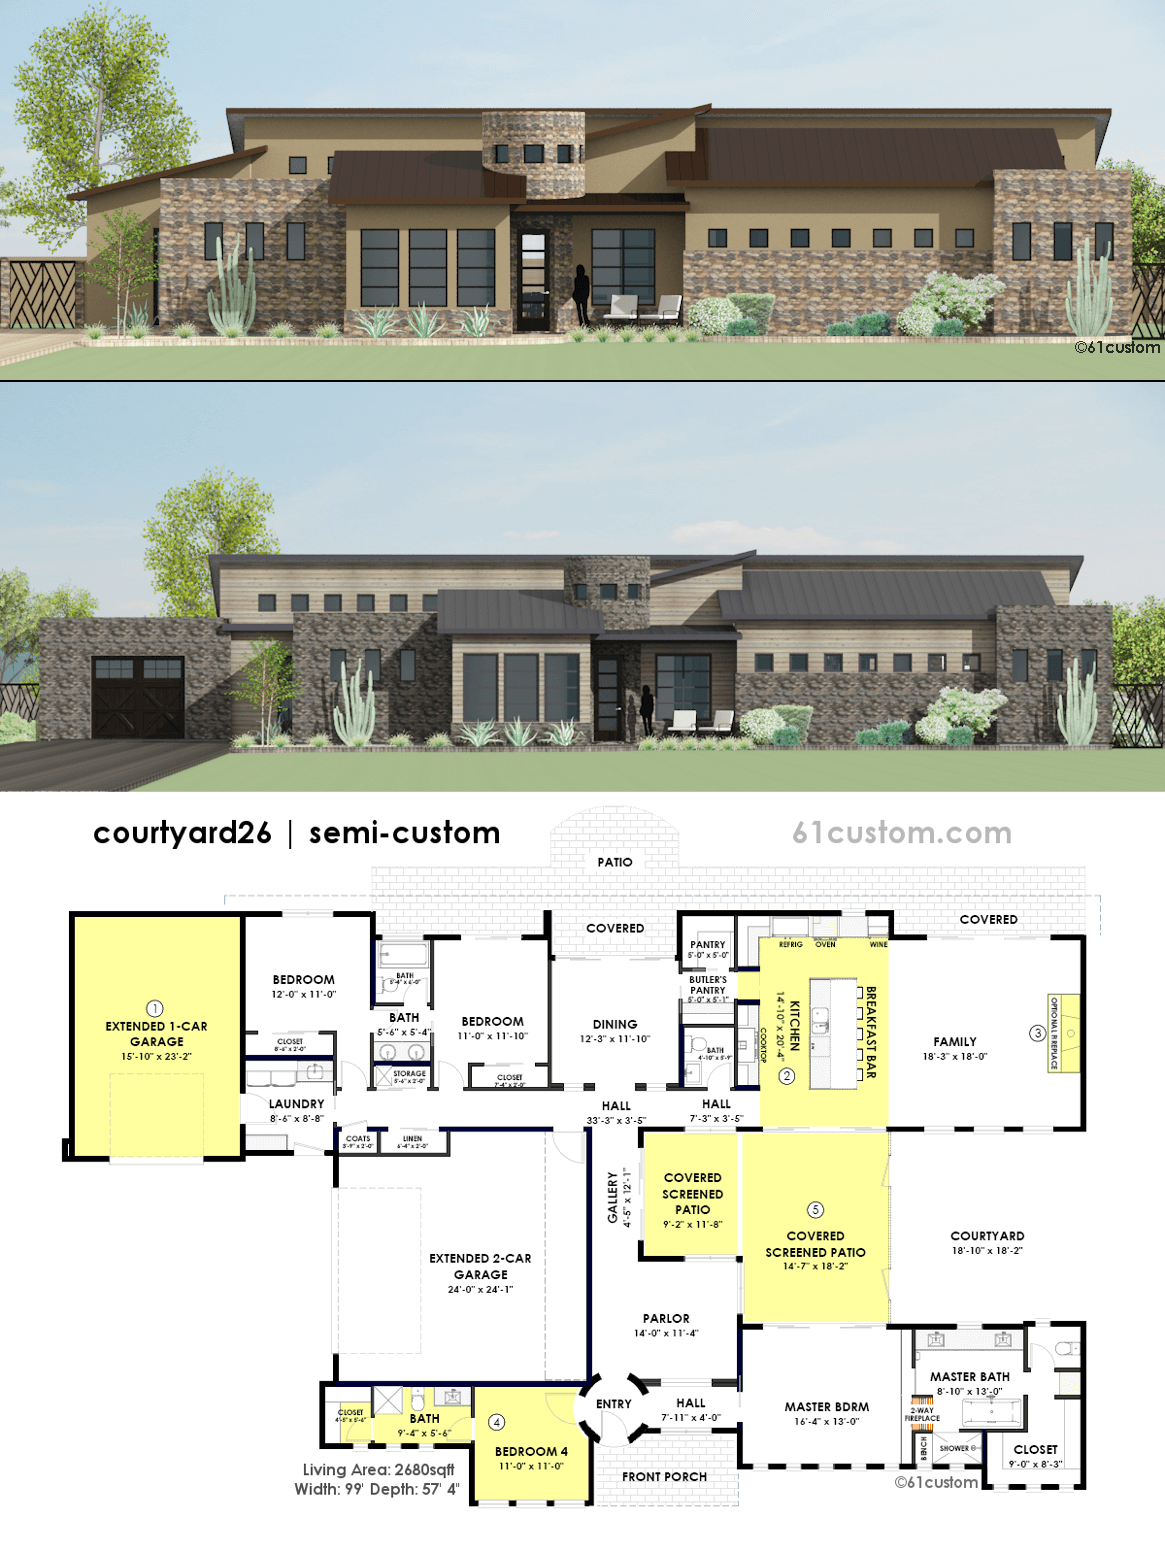 Contemporary side courtyard house plan 61custom for Modern floor plans